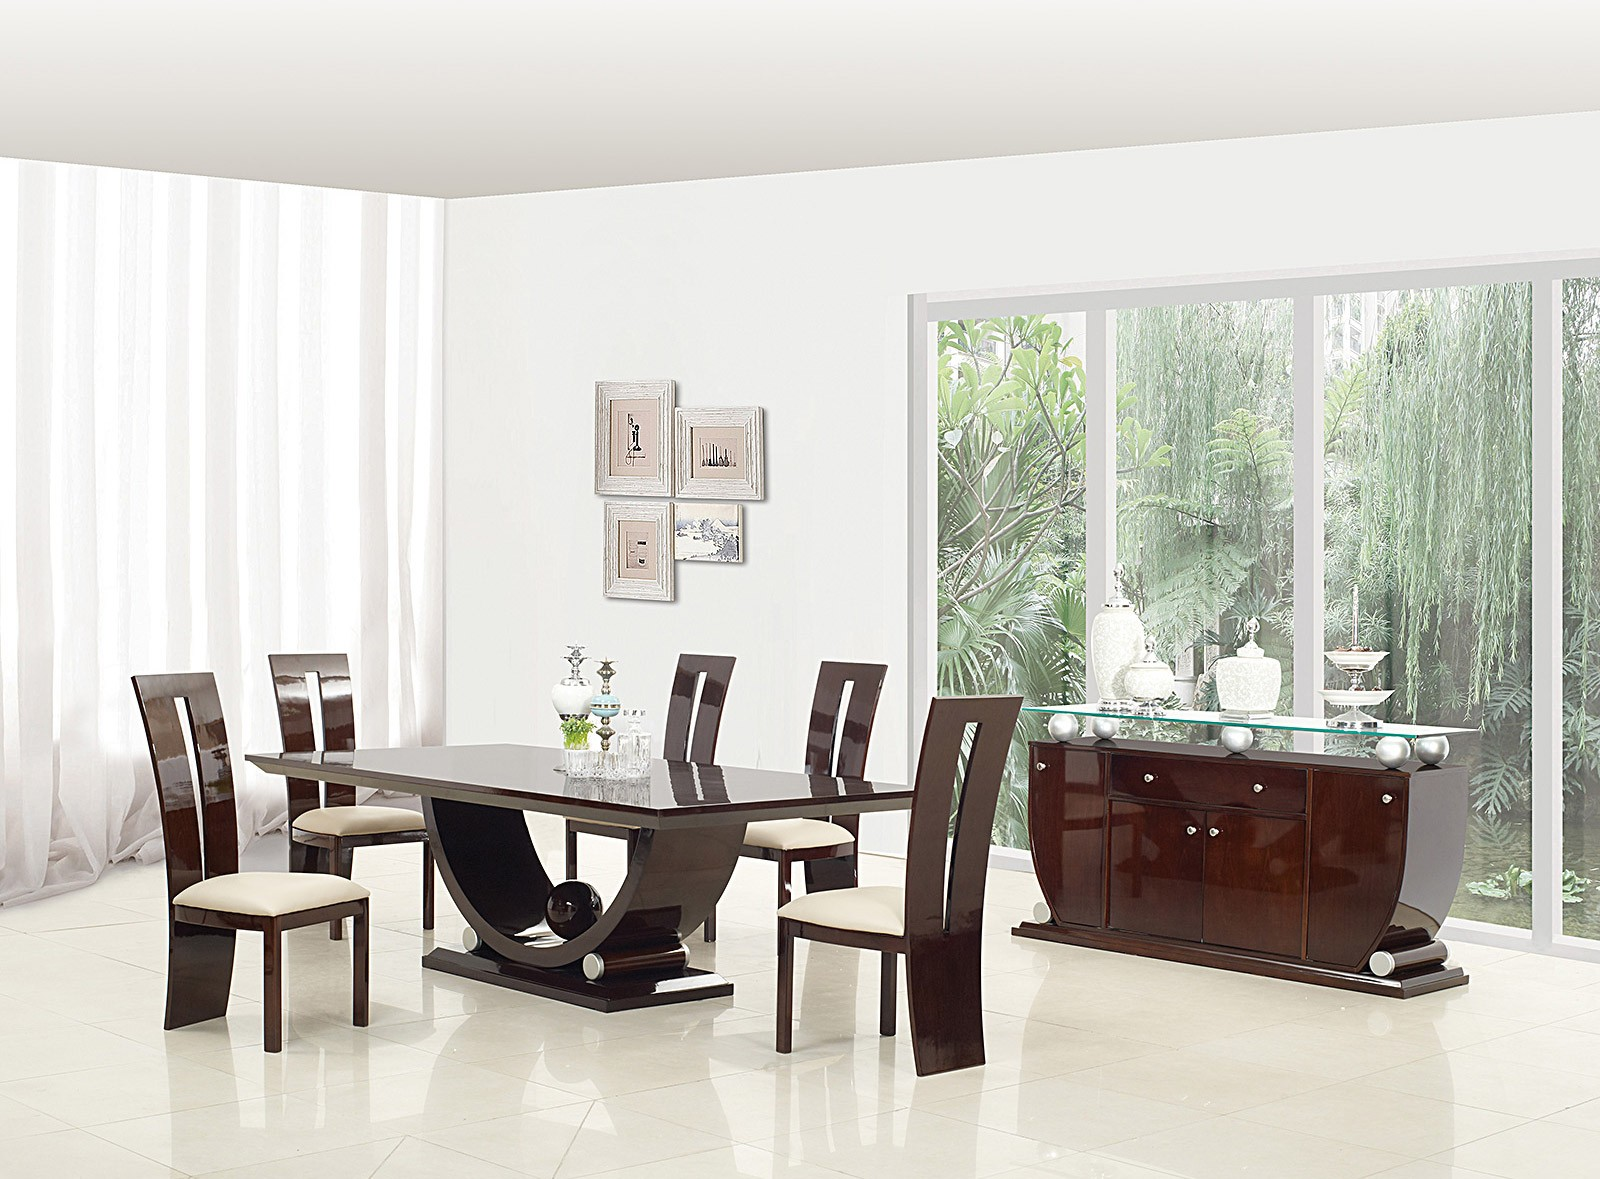 Awesome D12117 Dining Room Set In Dark Brown Lacquer Finish Download Free Architecture Designs Sospemadebymaigaardcom